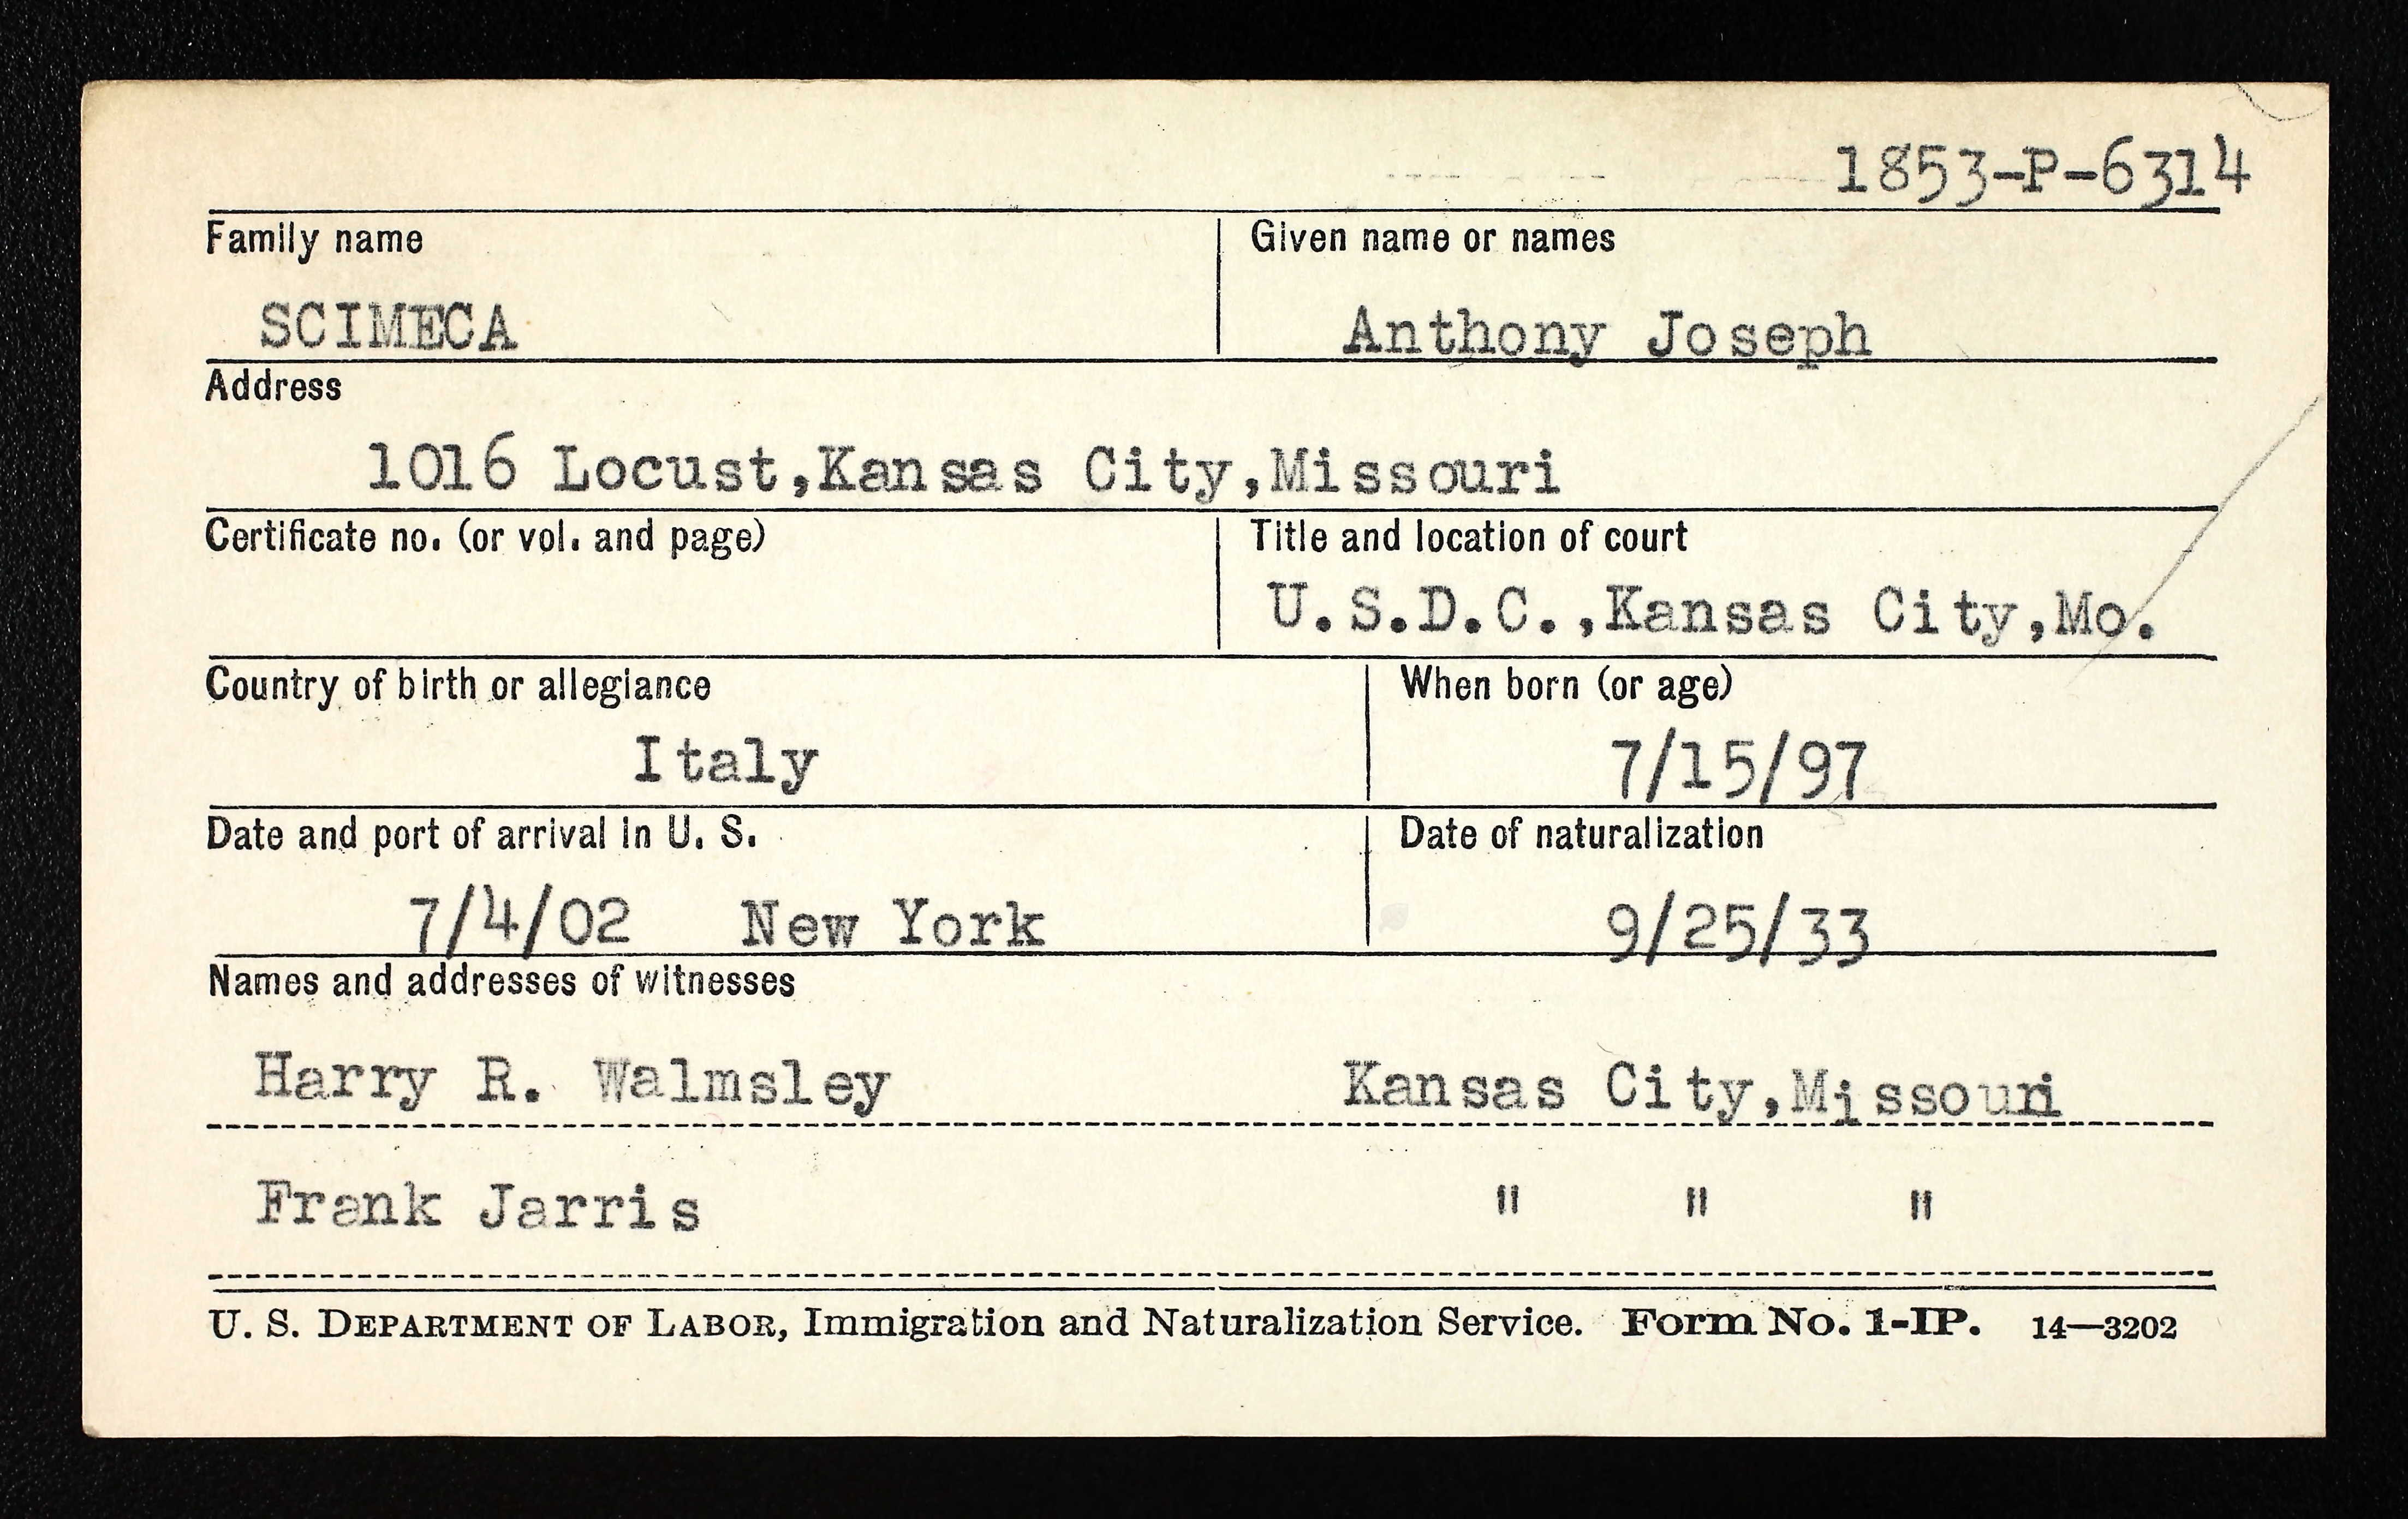 Dr anthony joseph scimeca 1897 1953 find a grave memorial dr scimeca was naturalized on september 25 1933 in kansas city jackson county missouri aiddatafo Choice Image